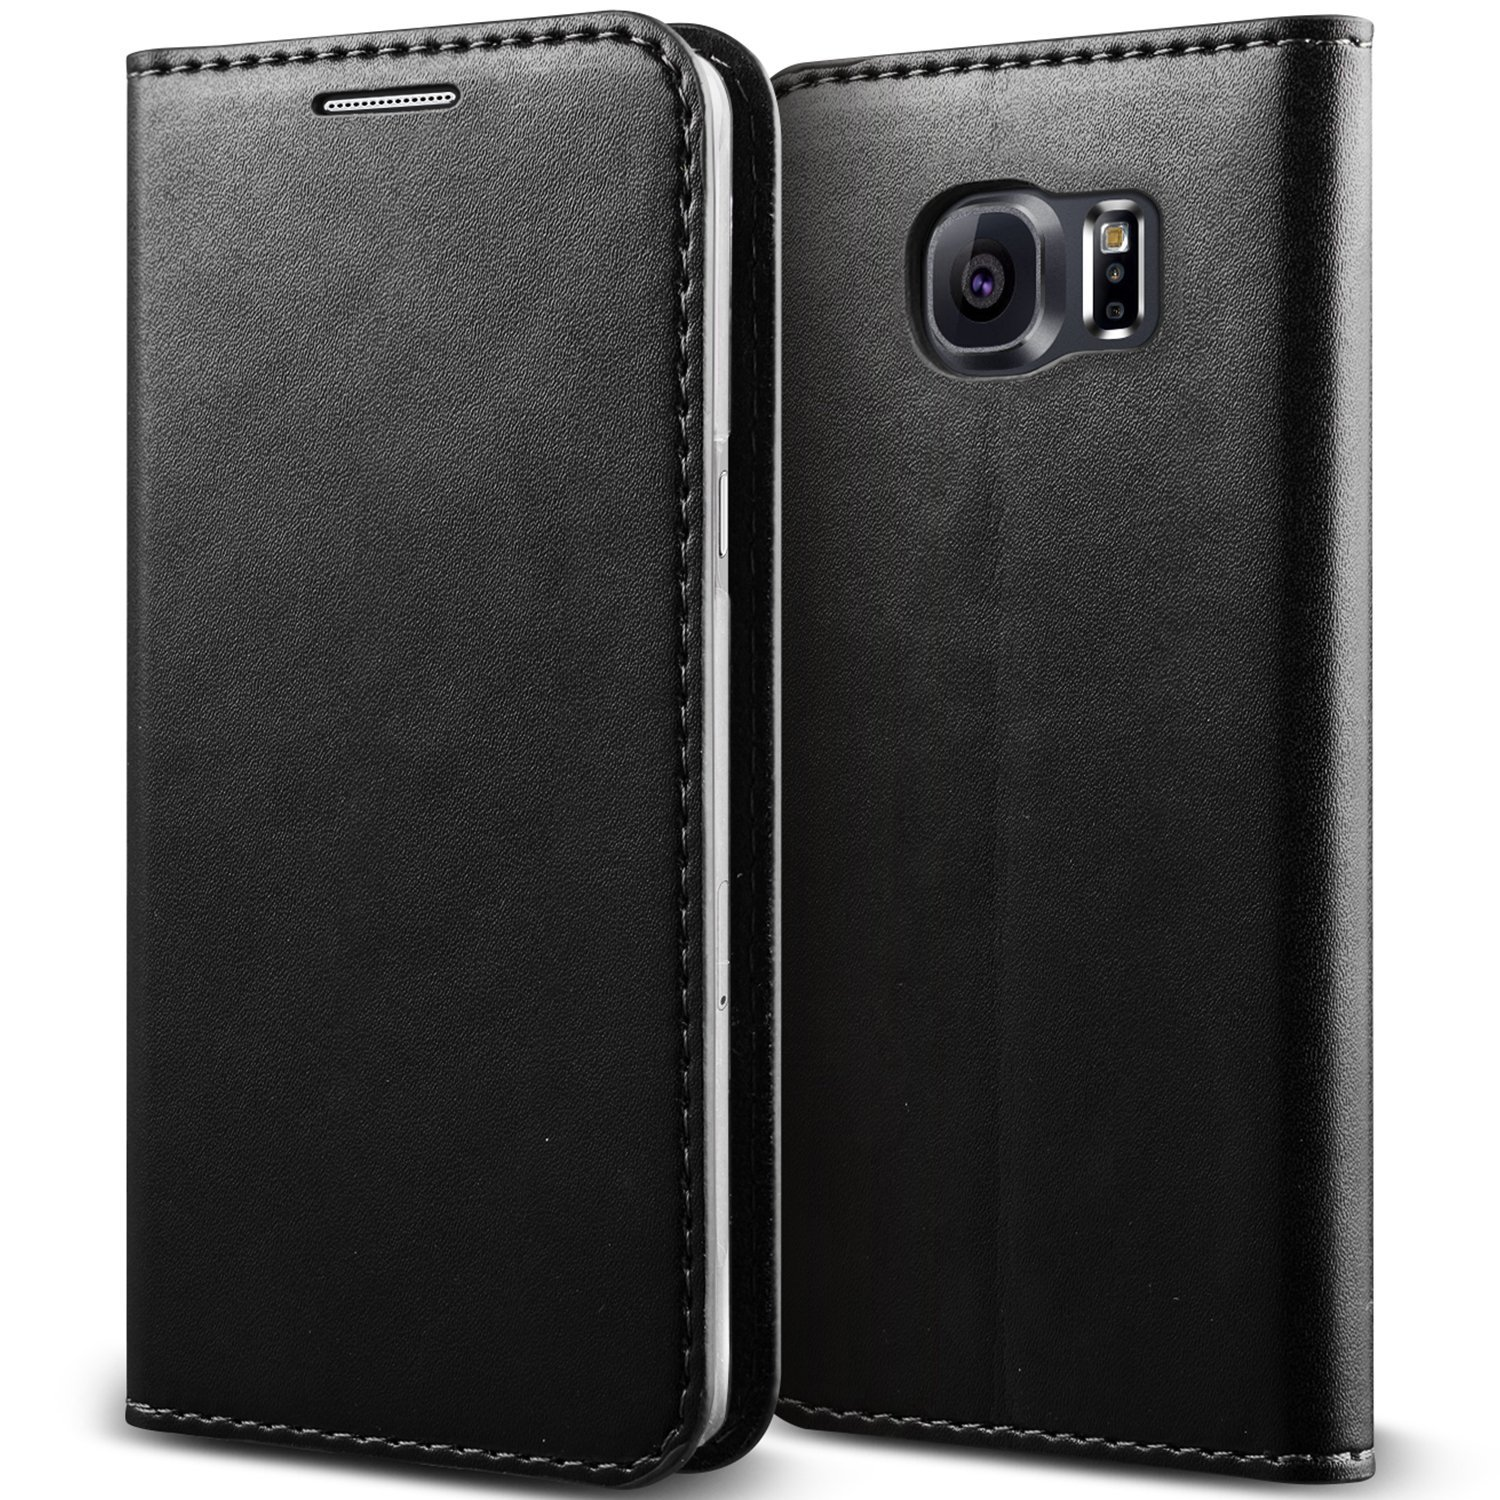 Galaxy S6 Case, Verus [Crayon Diary][Black] - [Leather Wallet][Kickstand][Slim Fit] For Samsung Galaxy S6